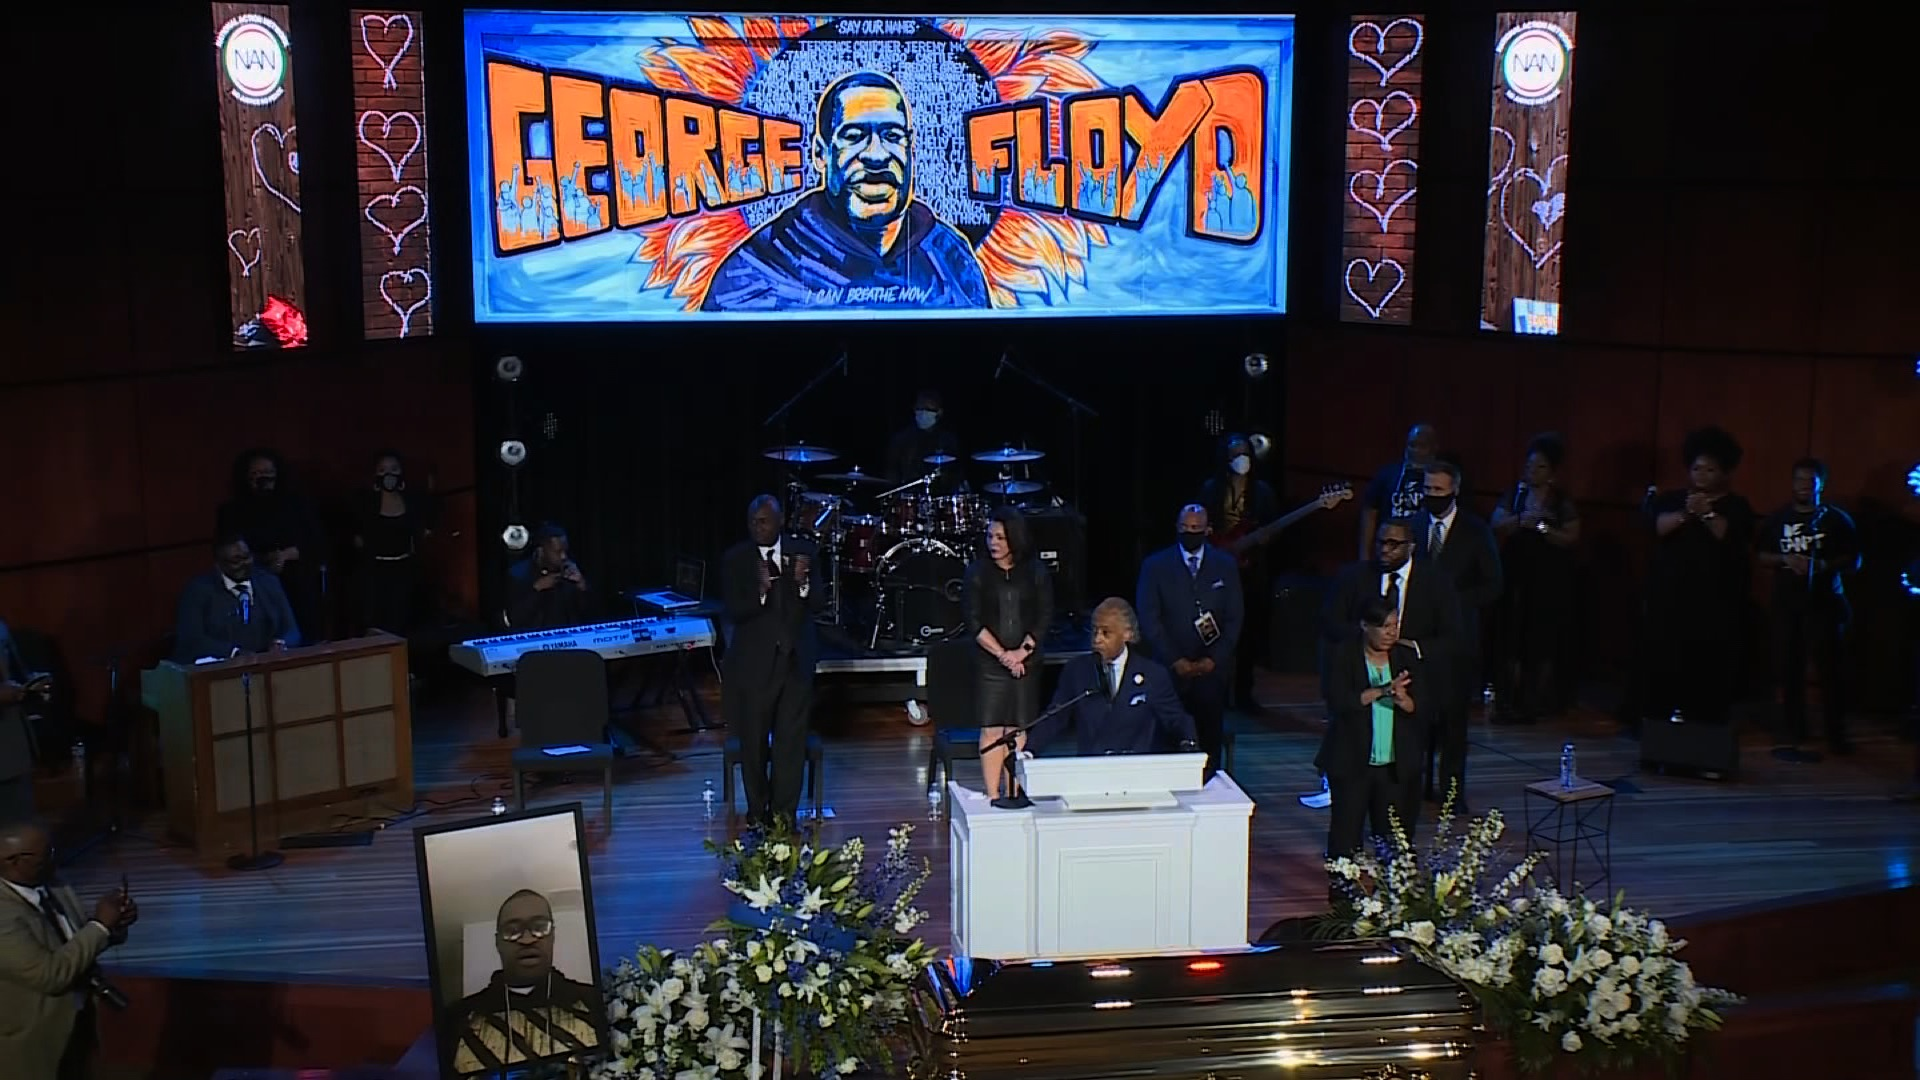 Rev. Al Sharpton speaks on stage at George Floyd's memorial service in Minneapolis, on June 4.